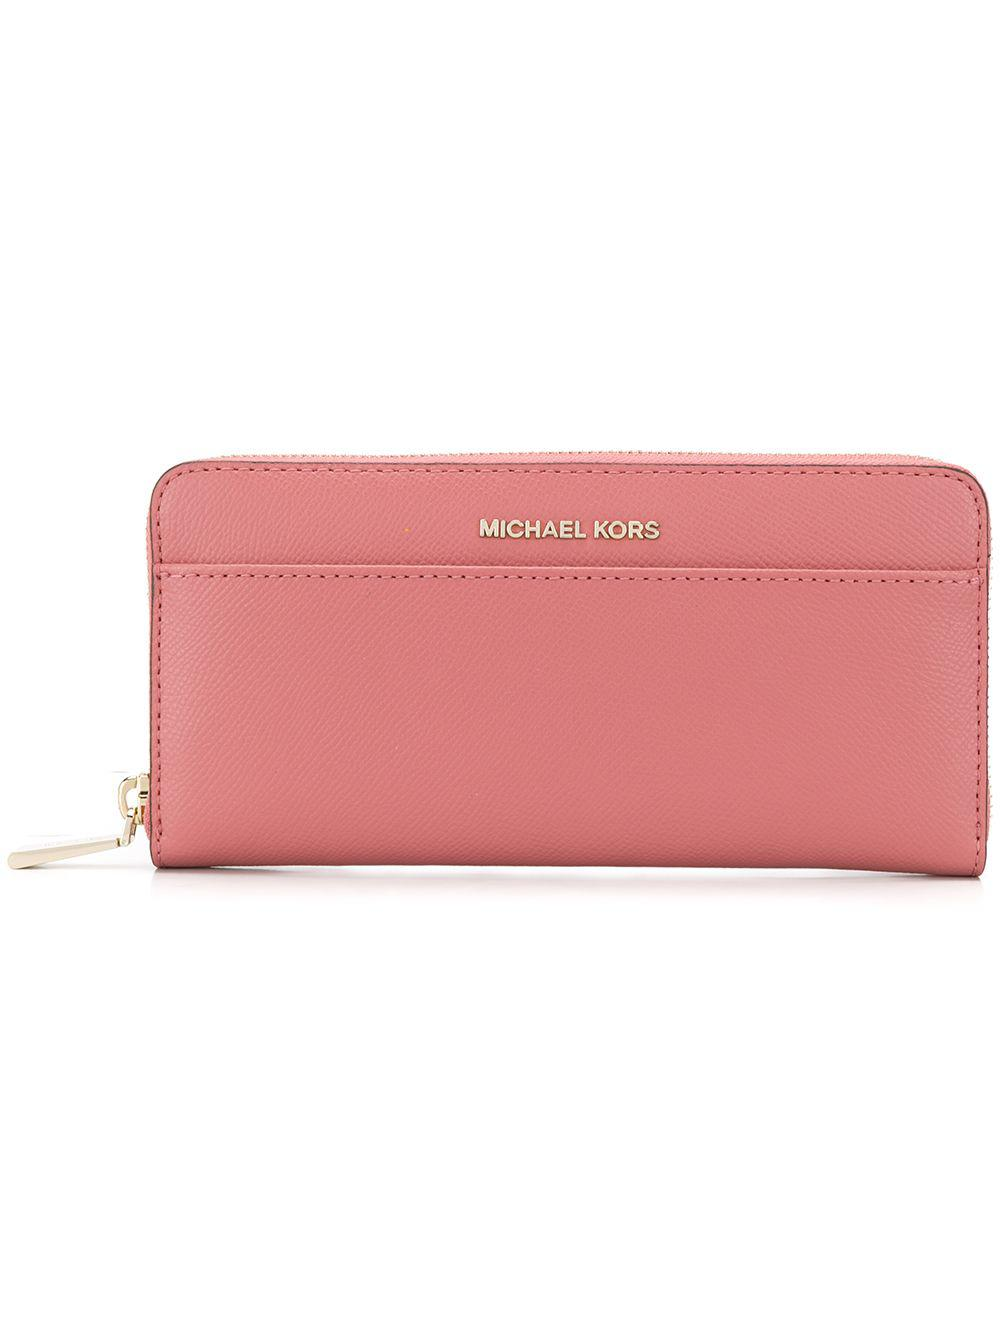 6b6bd23c3adb MICHAEL Michael Kors. Women's Pink Leather Zip Around Continental Wallet